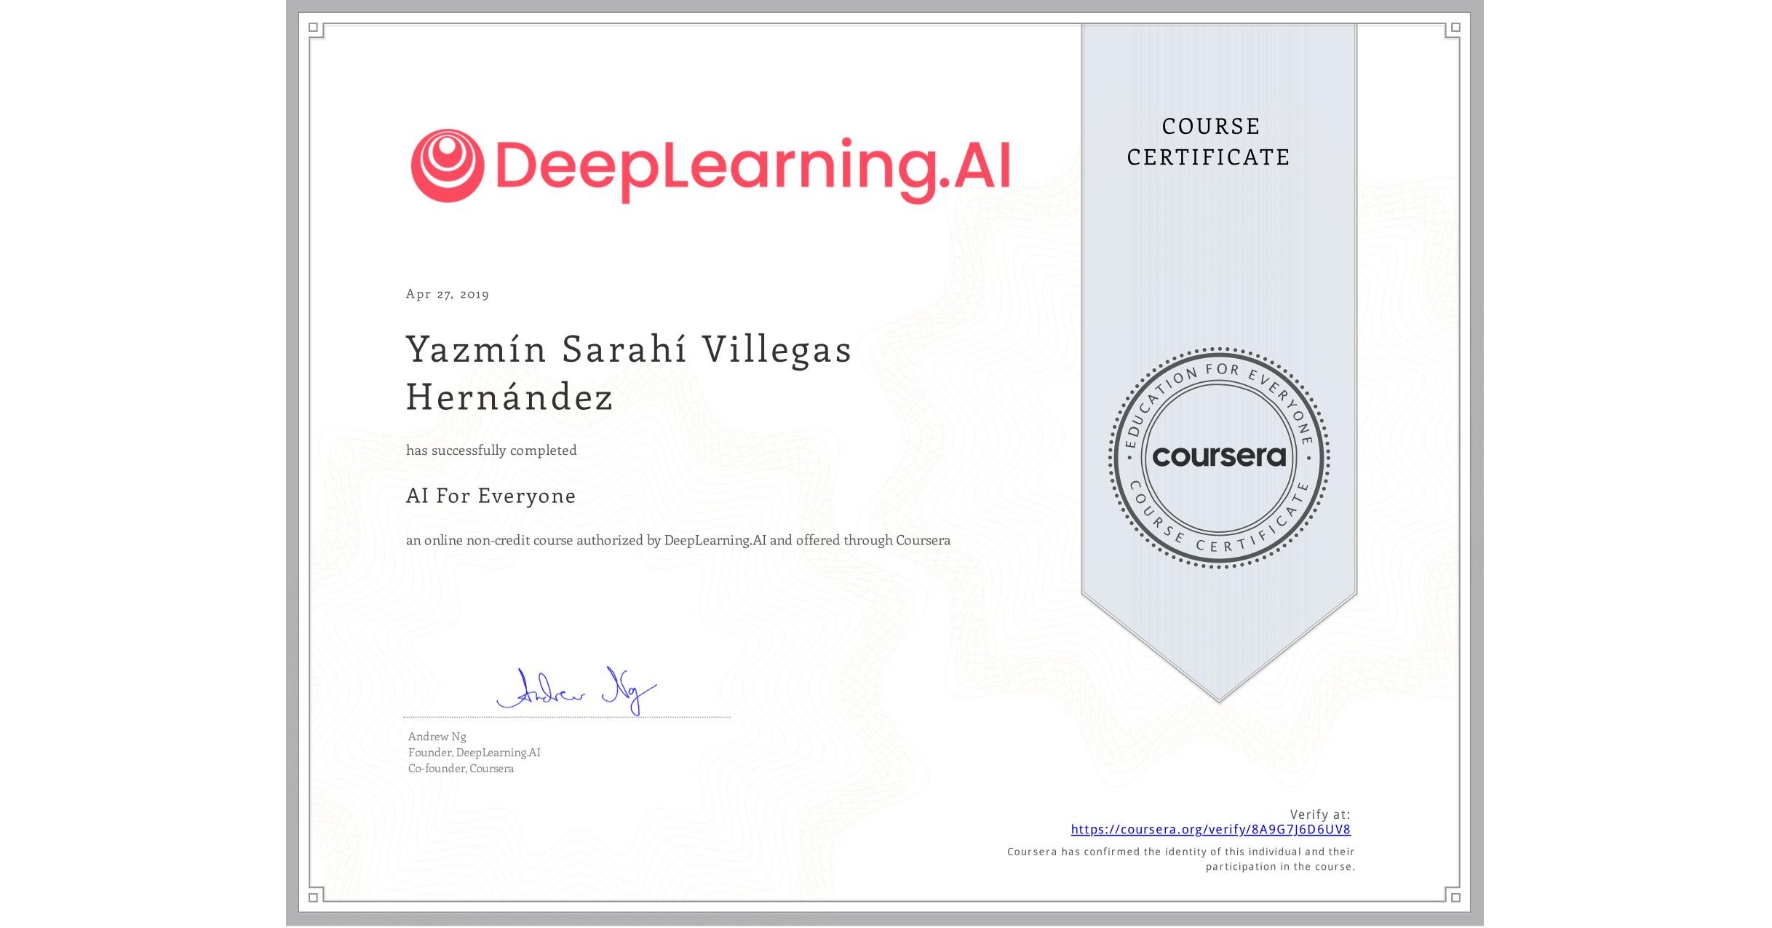 View certificate for Yazmín Sarahí Villegas Hernández, AI For Everyone, an online non-credit course authorized by DeepLearning.AI and offered through Coursera